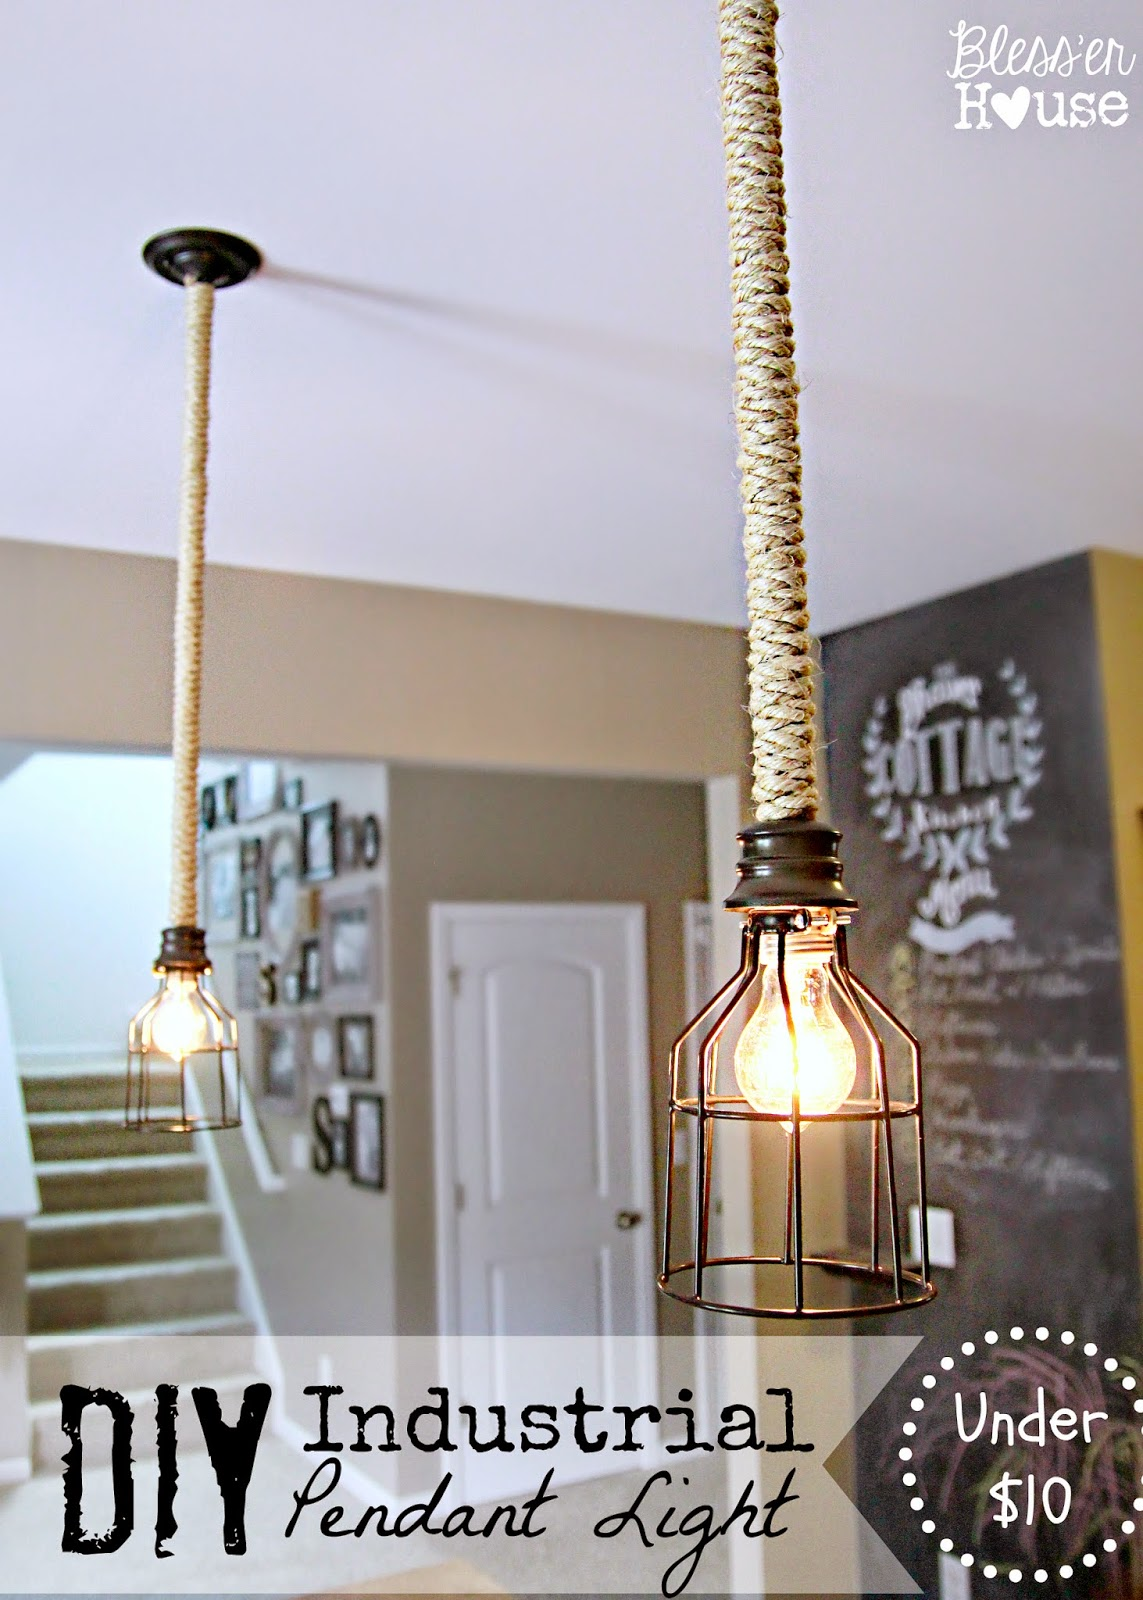 DIY Industrial Pendant Light for Under $10 - Bless'er House on bar signs, bar pendants, bar neon, bar cabinet lighting, bar accessories, bar lamps, bar chandeliers, bar lighting fixtures, bar granite countertops,